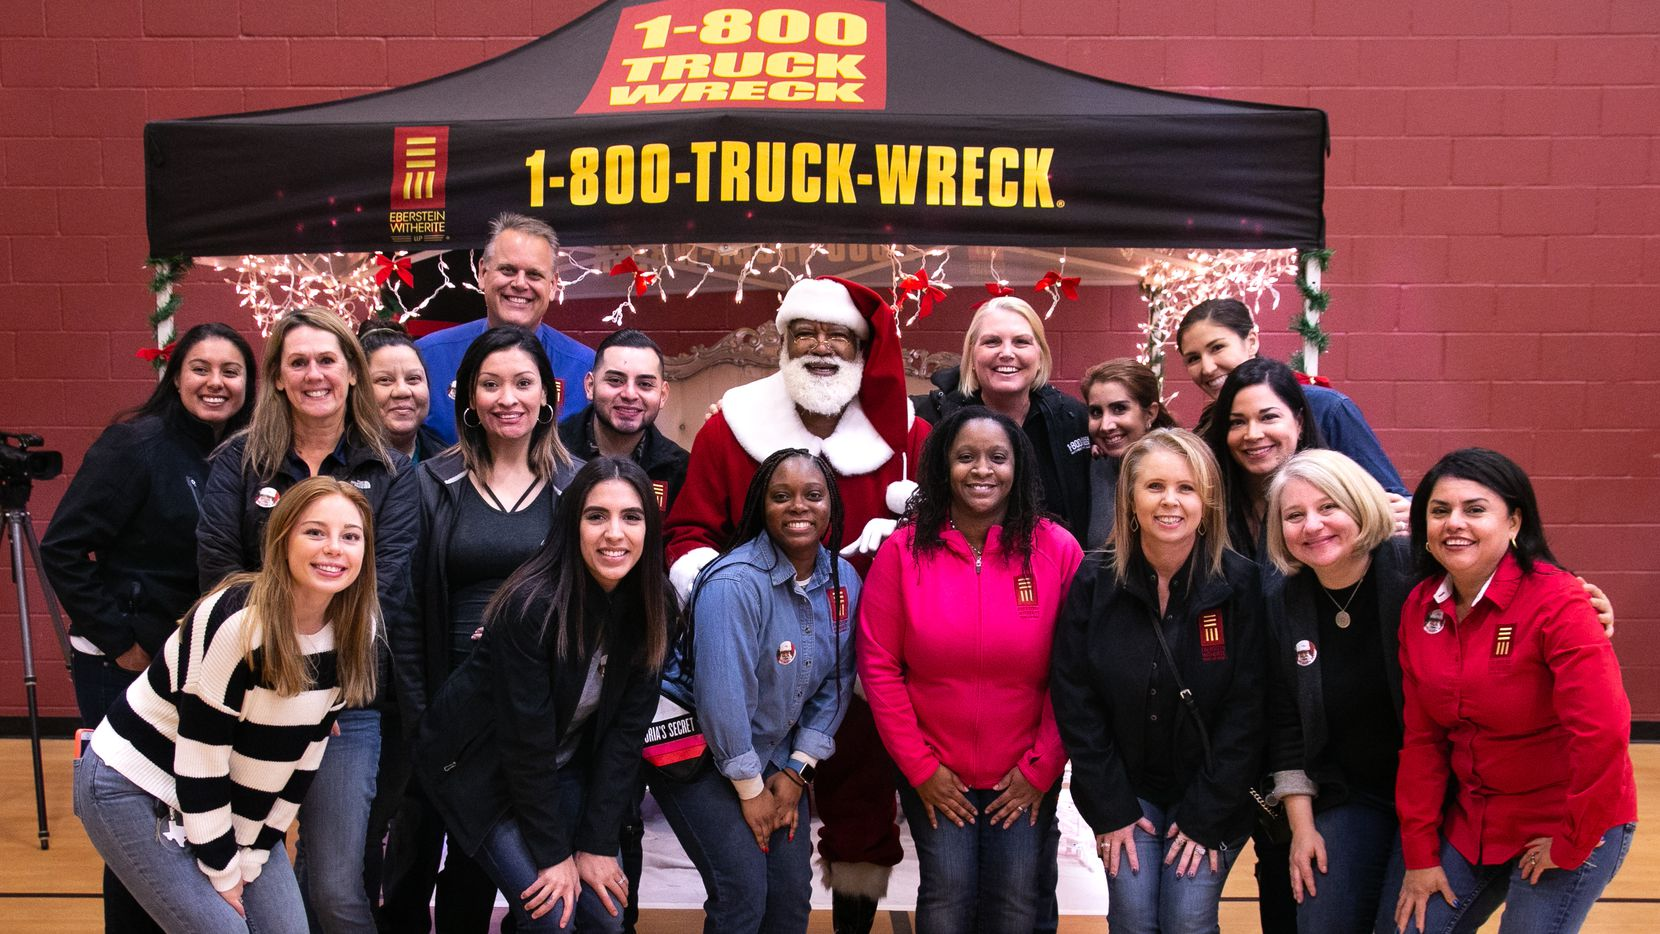 Dallas and Fort Worth office team members from Witherite Law Group and its founding partner, Amy Witherite (next to Santa), posed for a photo in November as they distributed over 400 jackets to Fort Worth residents at the firm's fourth annual jacket gifting event. The event included free books, jackets, photos with Santa, a bounce house, photo booth and lunch from Campisi s for all attendees.